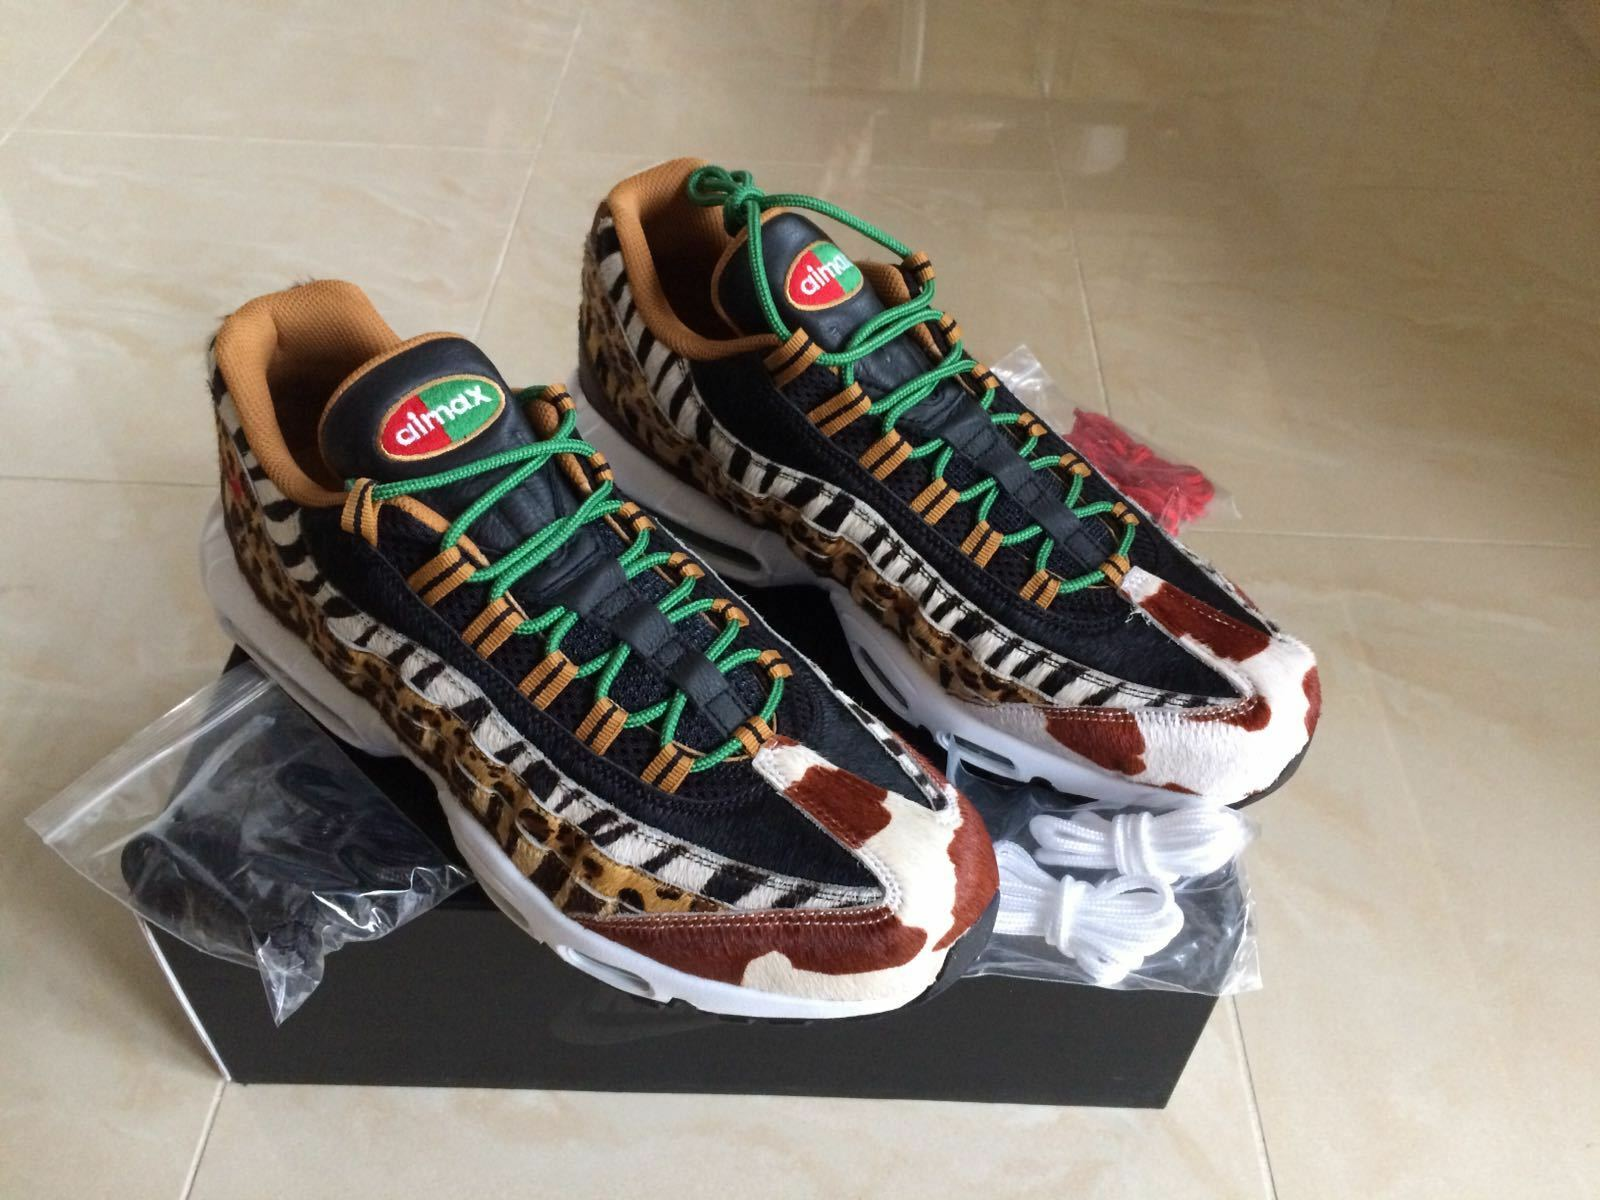 2018 NIKE AIR MAX 95 ATMOS ANIMAL BEAST DLX SIZES & 12 NEW Wild casual shoes